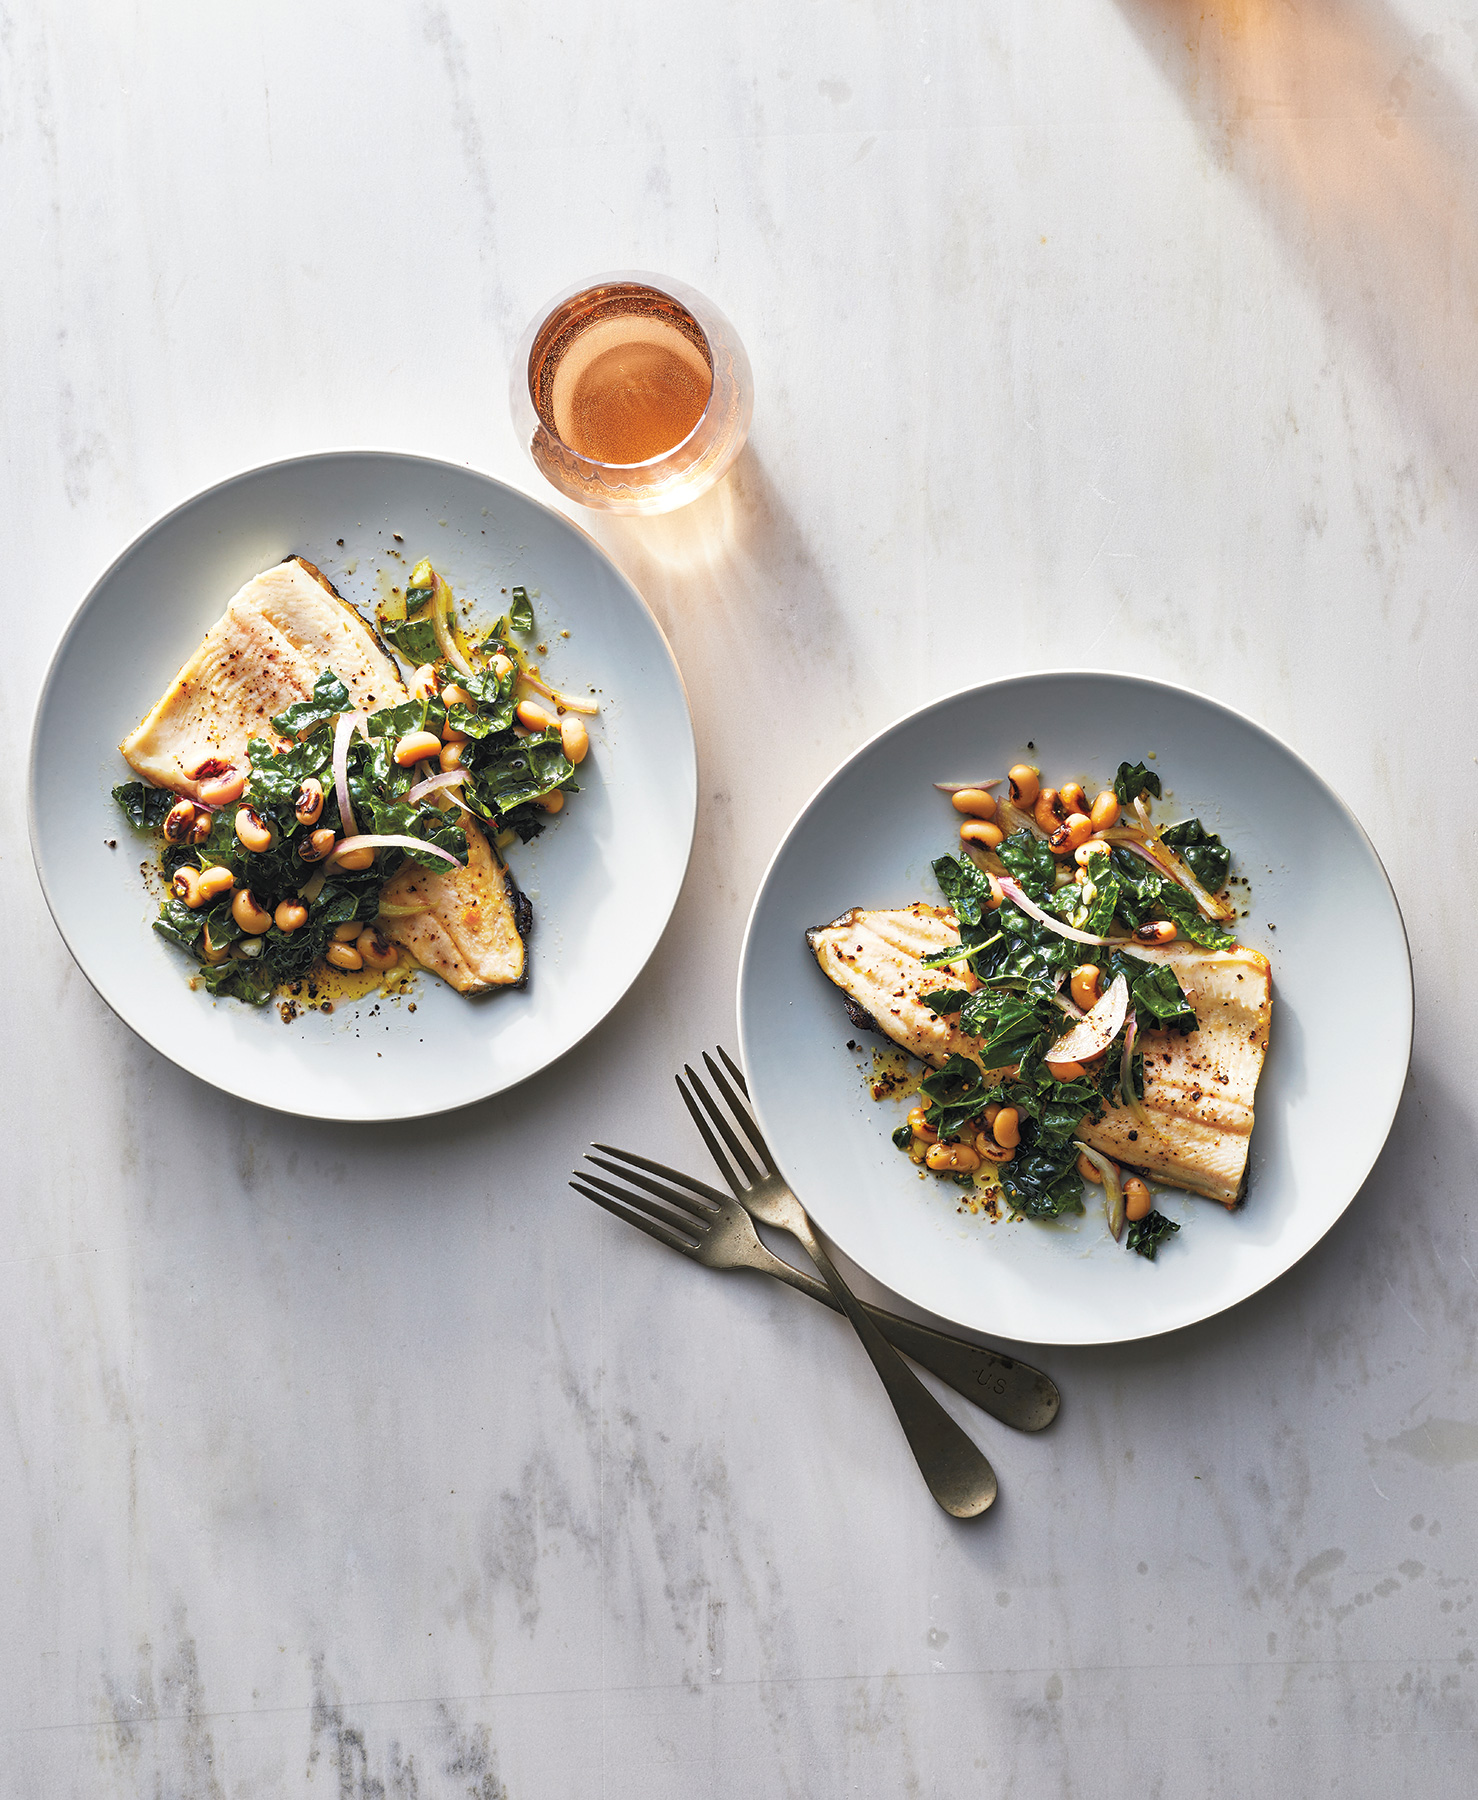 Seared Trout and Black-Eyed Pea Salad